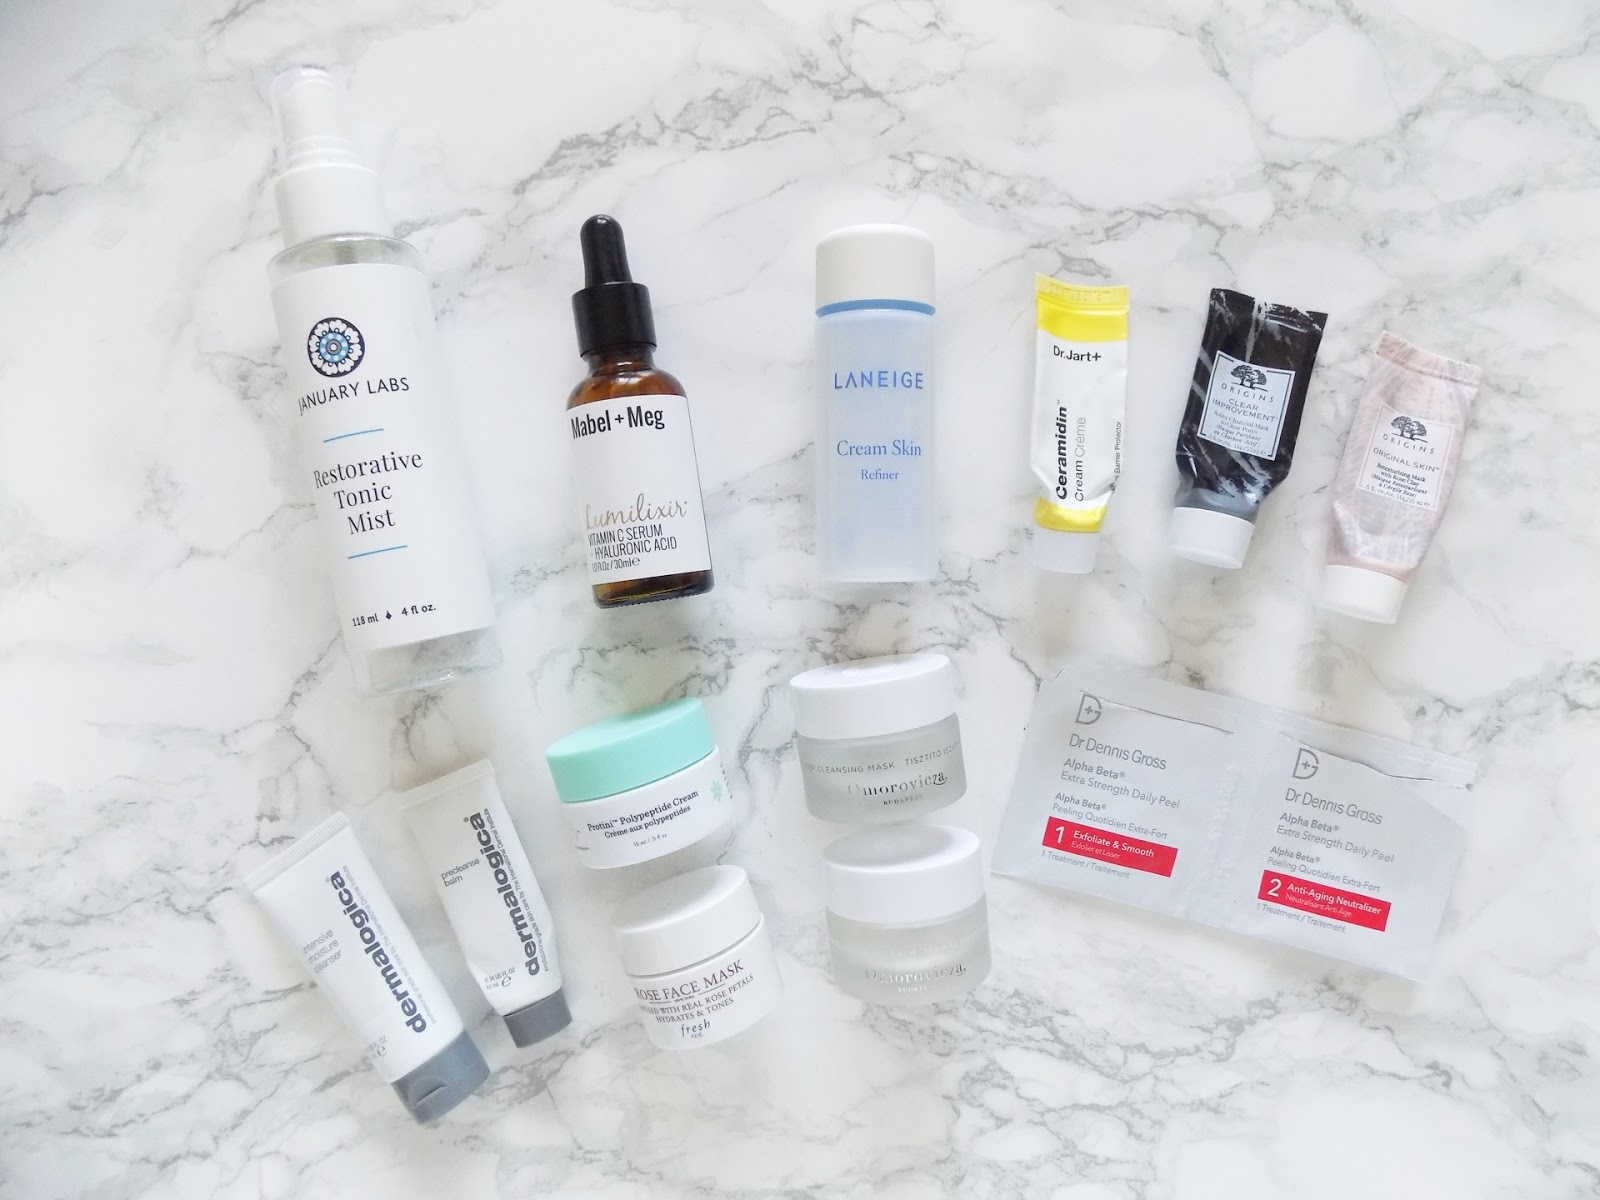 skincare empties January labs Dermalogica origins dr jart